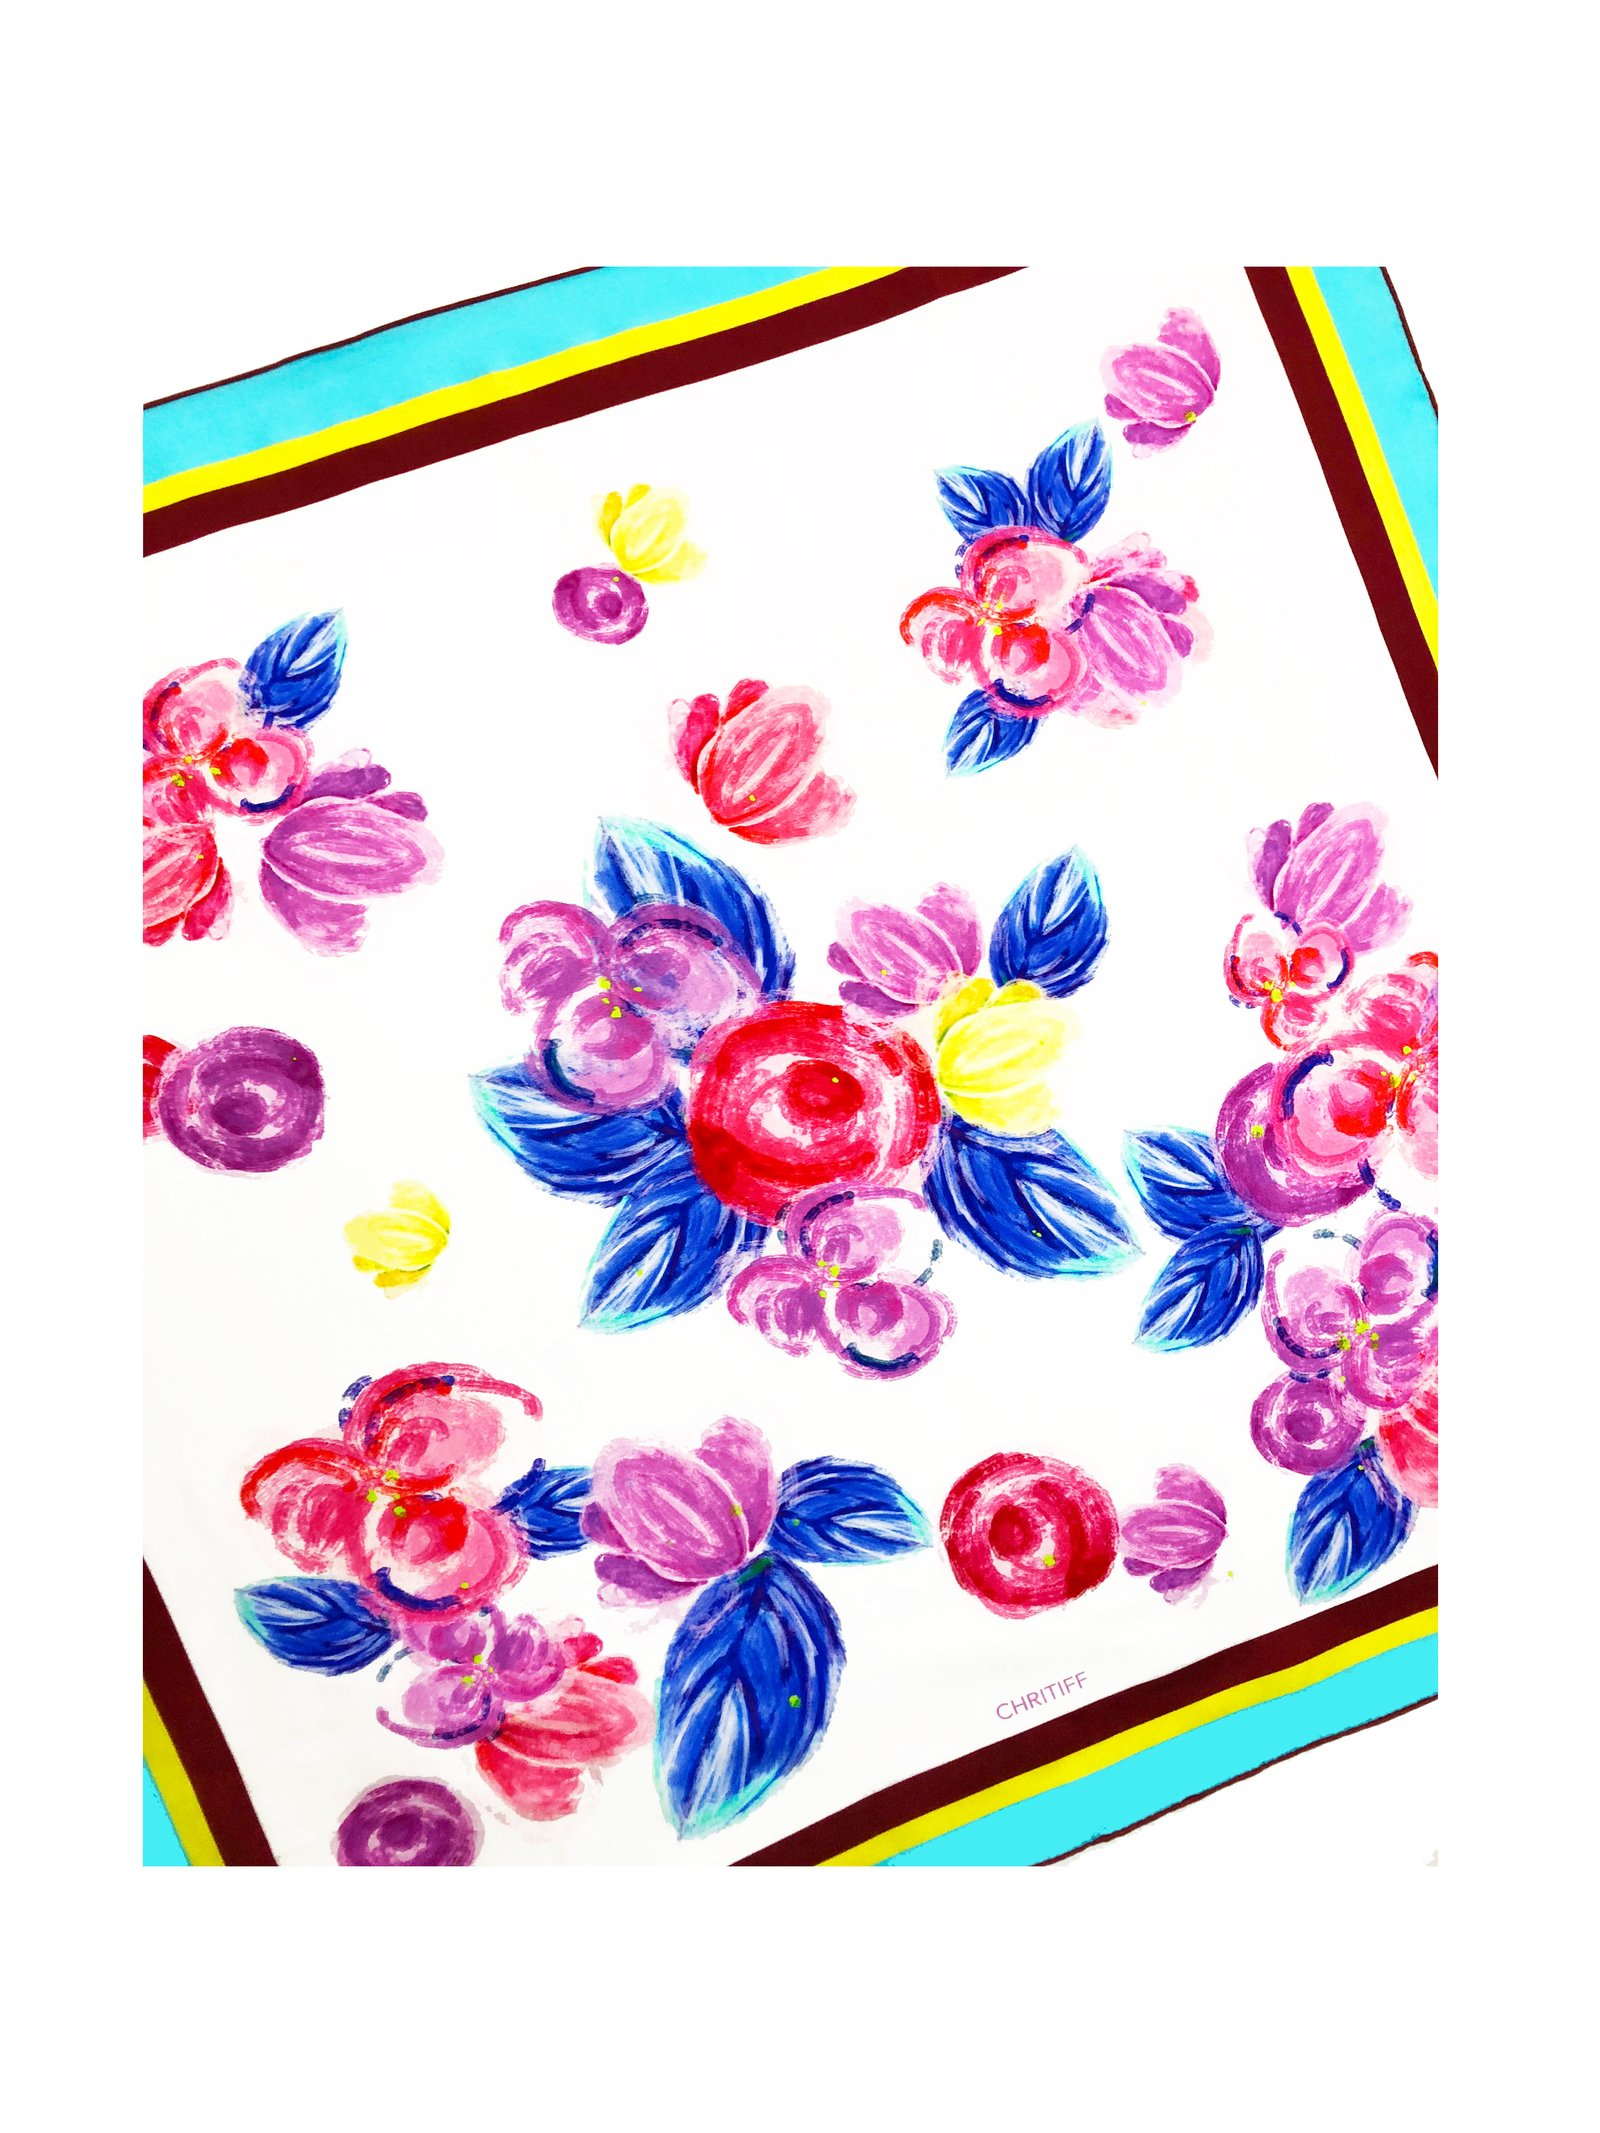 CHRITIFF Cherry Blossom Scarf (Multicolour) 120cm